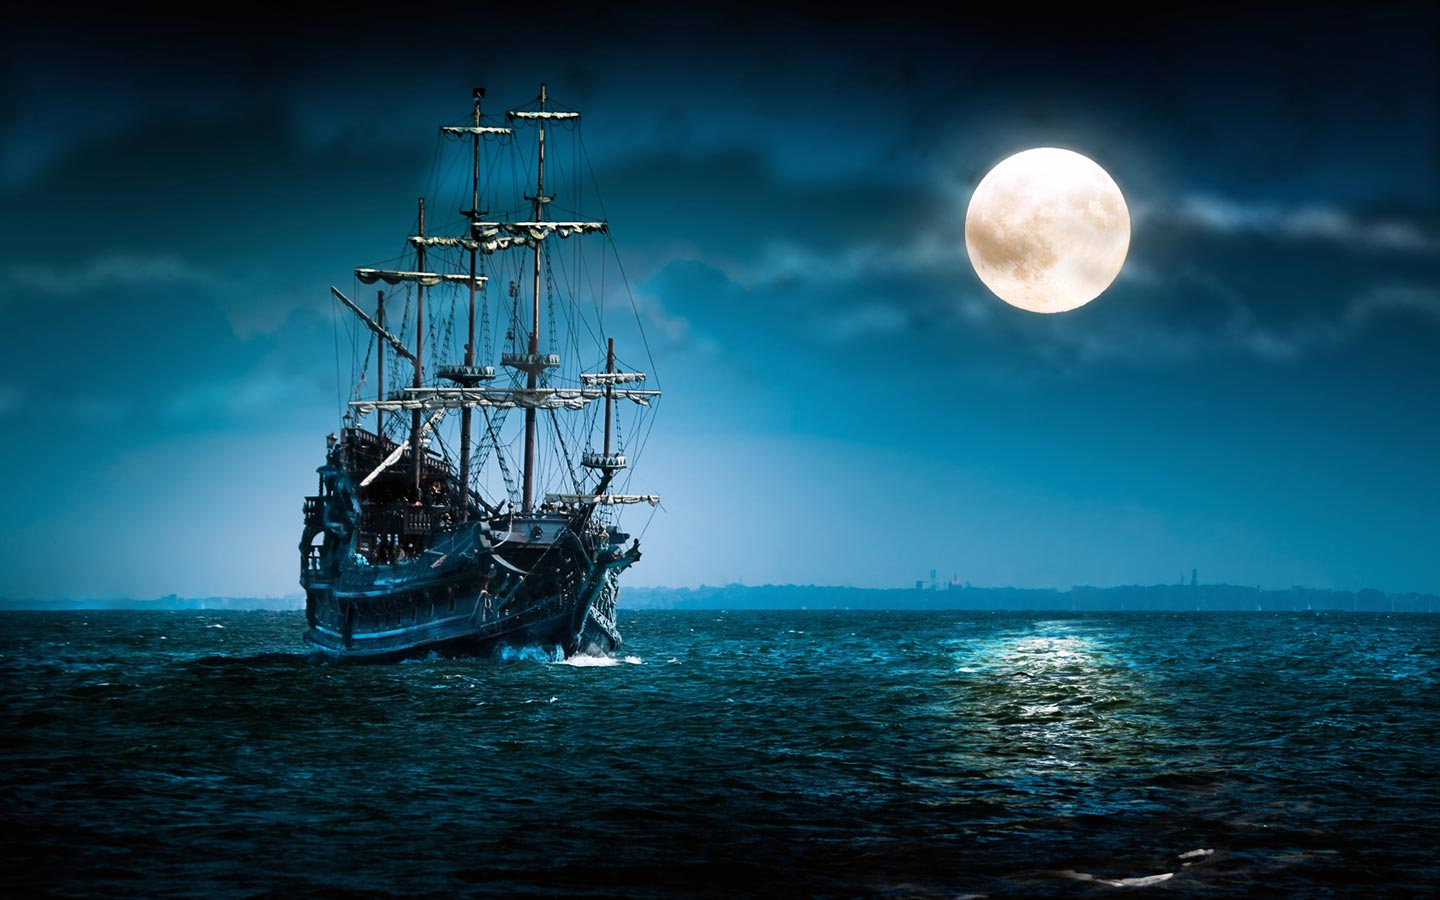 Ship 3D Wallpaper Widescreen